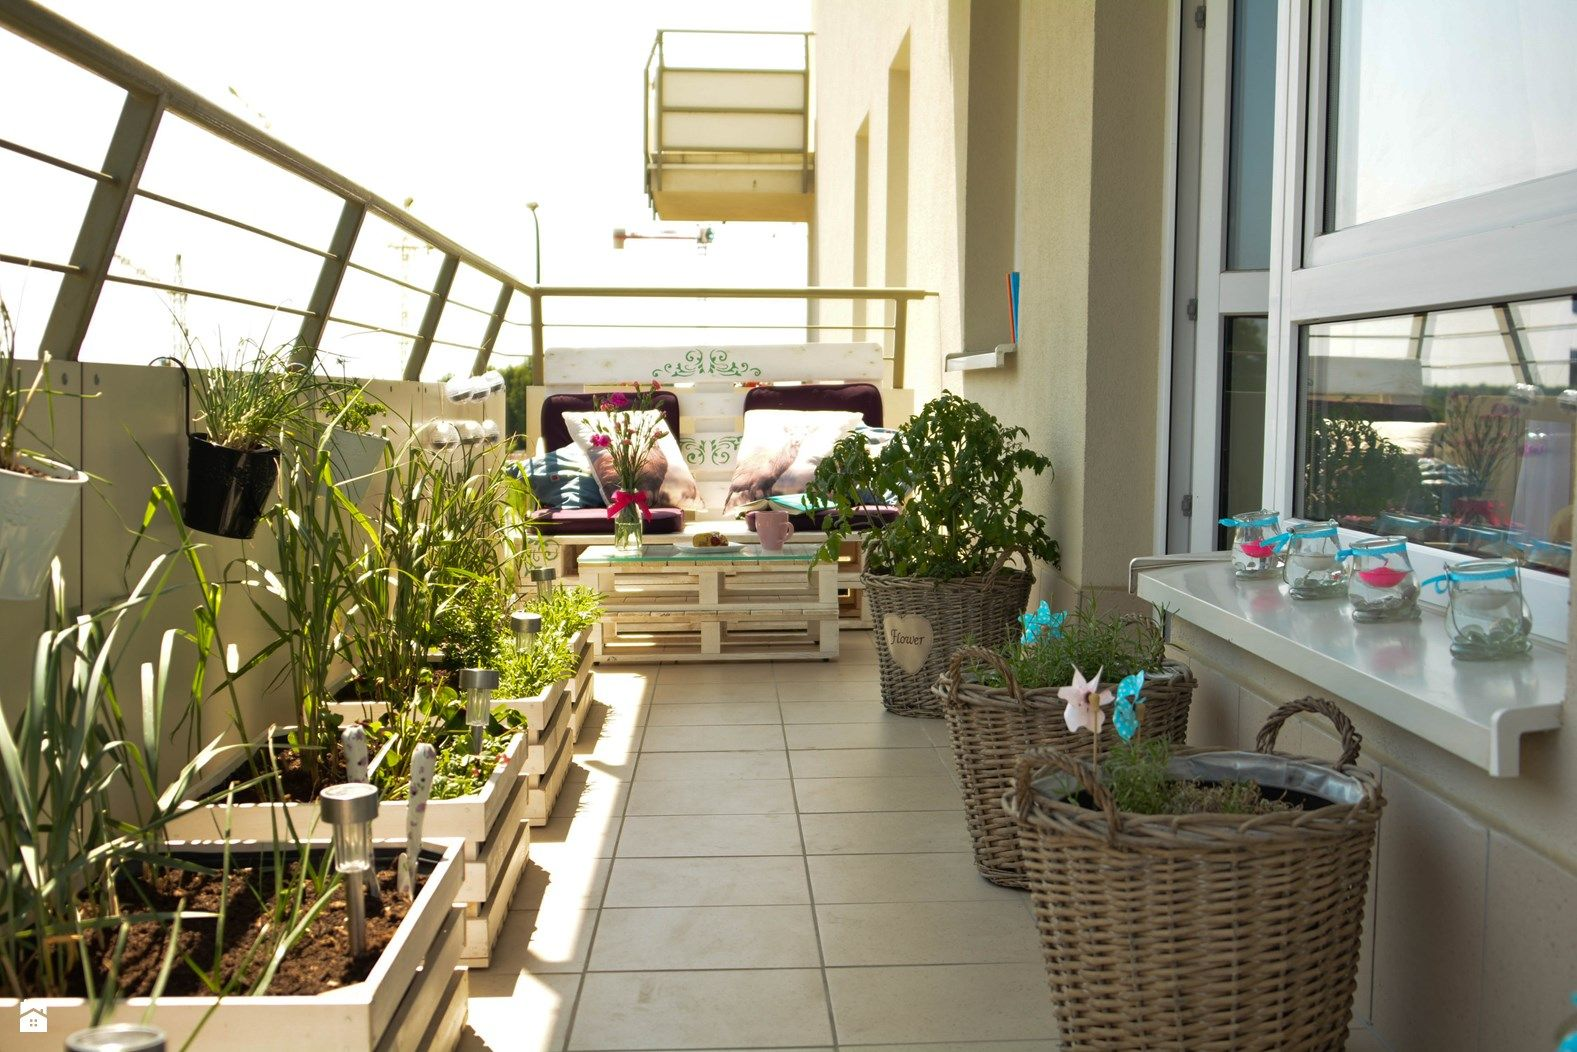 Best Of How to Decorate Apartment Balcony